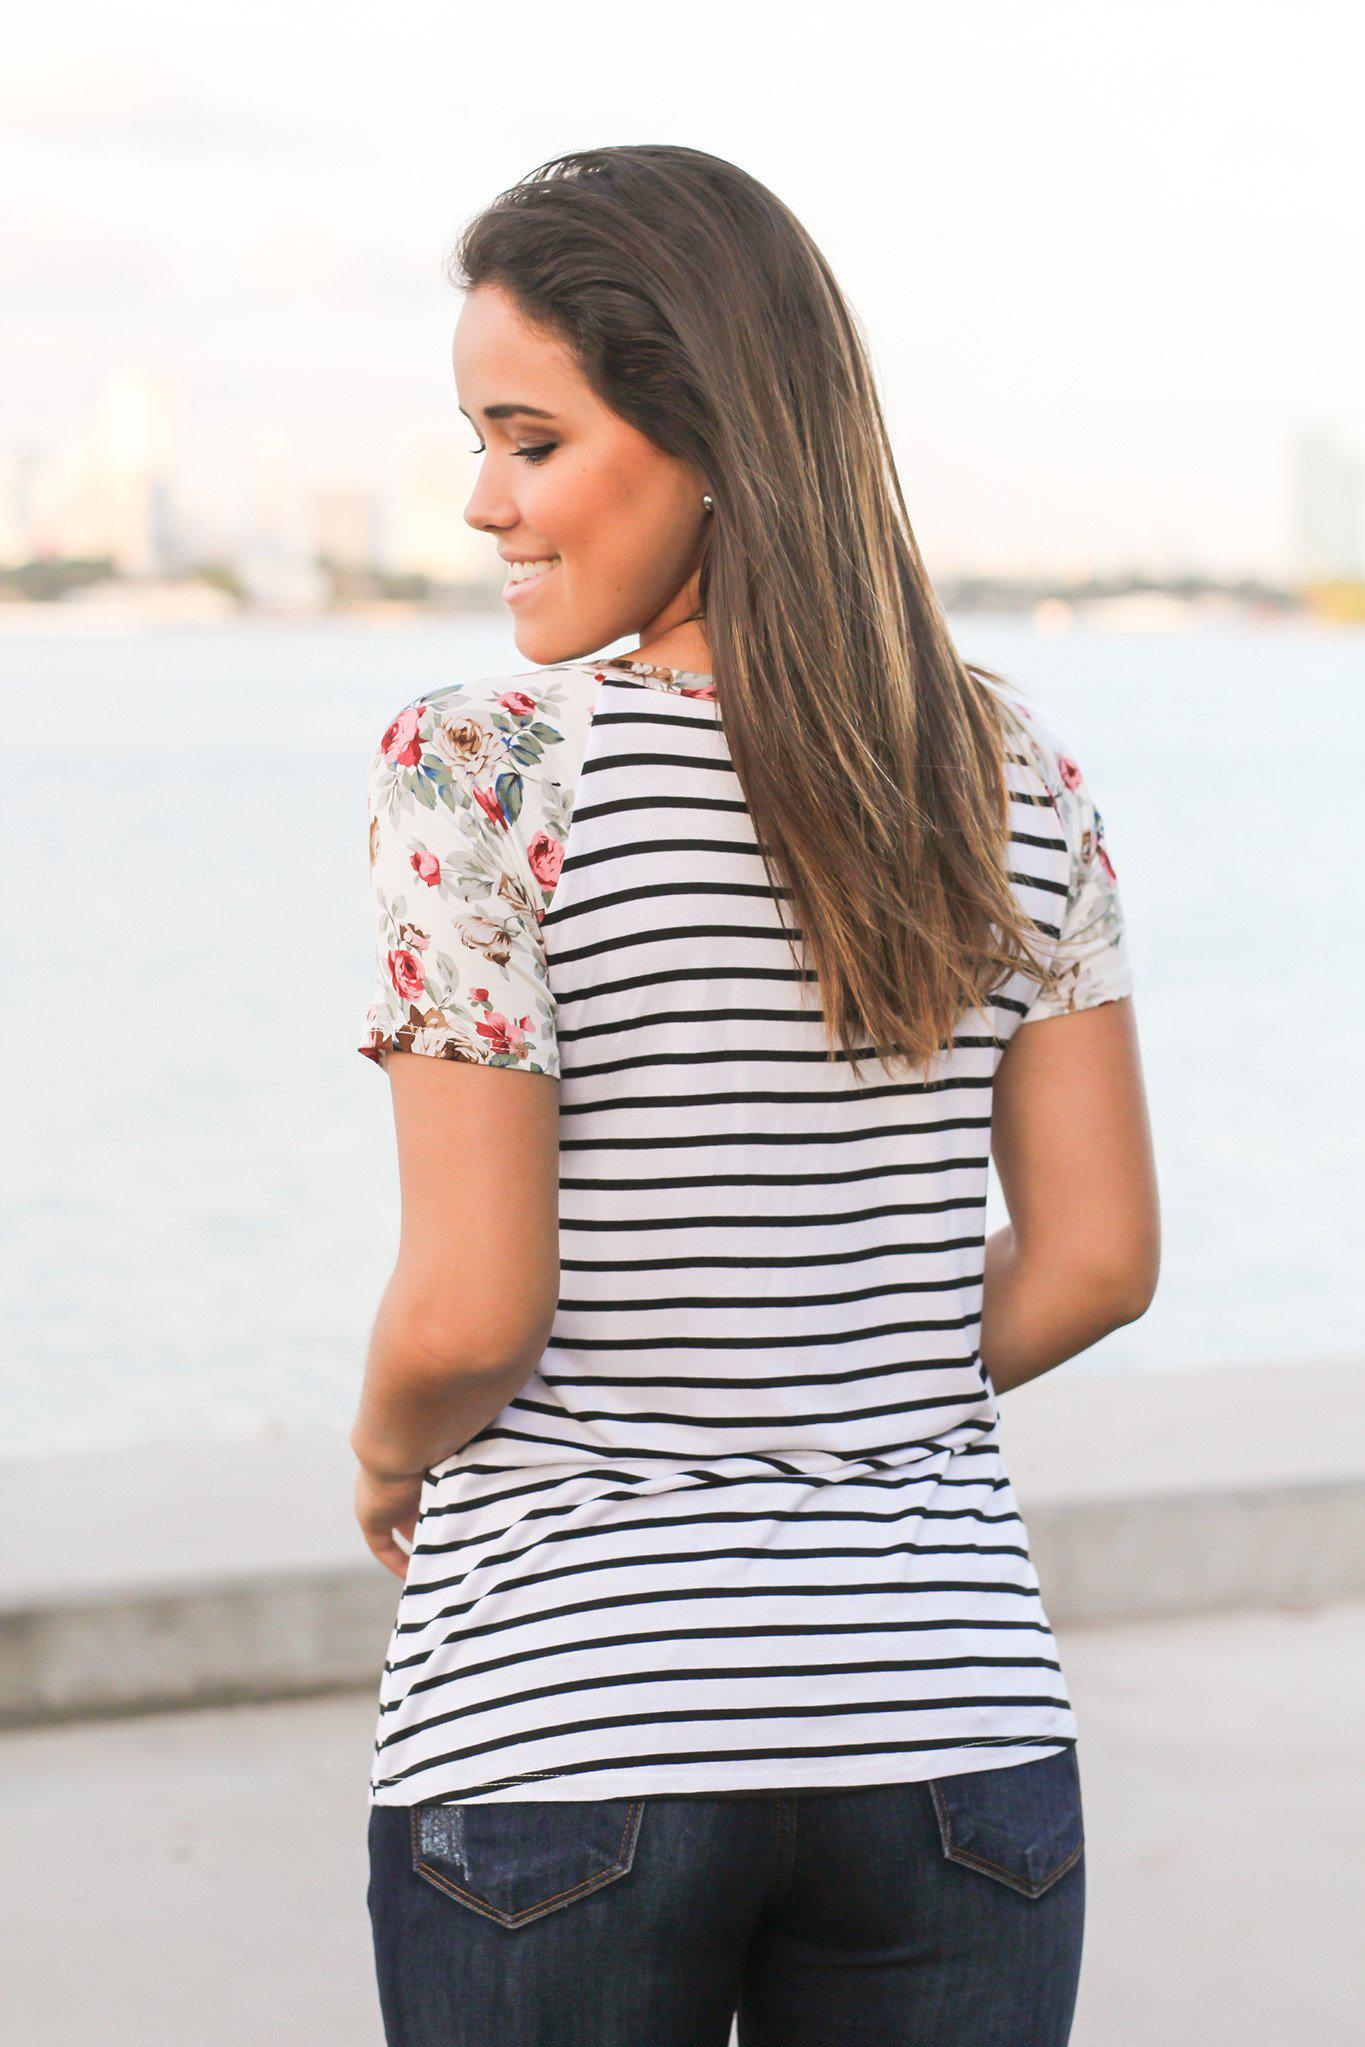 Black and Ivory Striped Top with Floral Sleeves